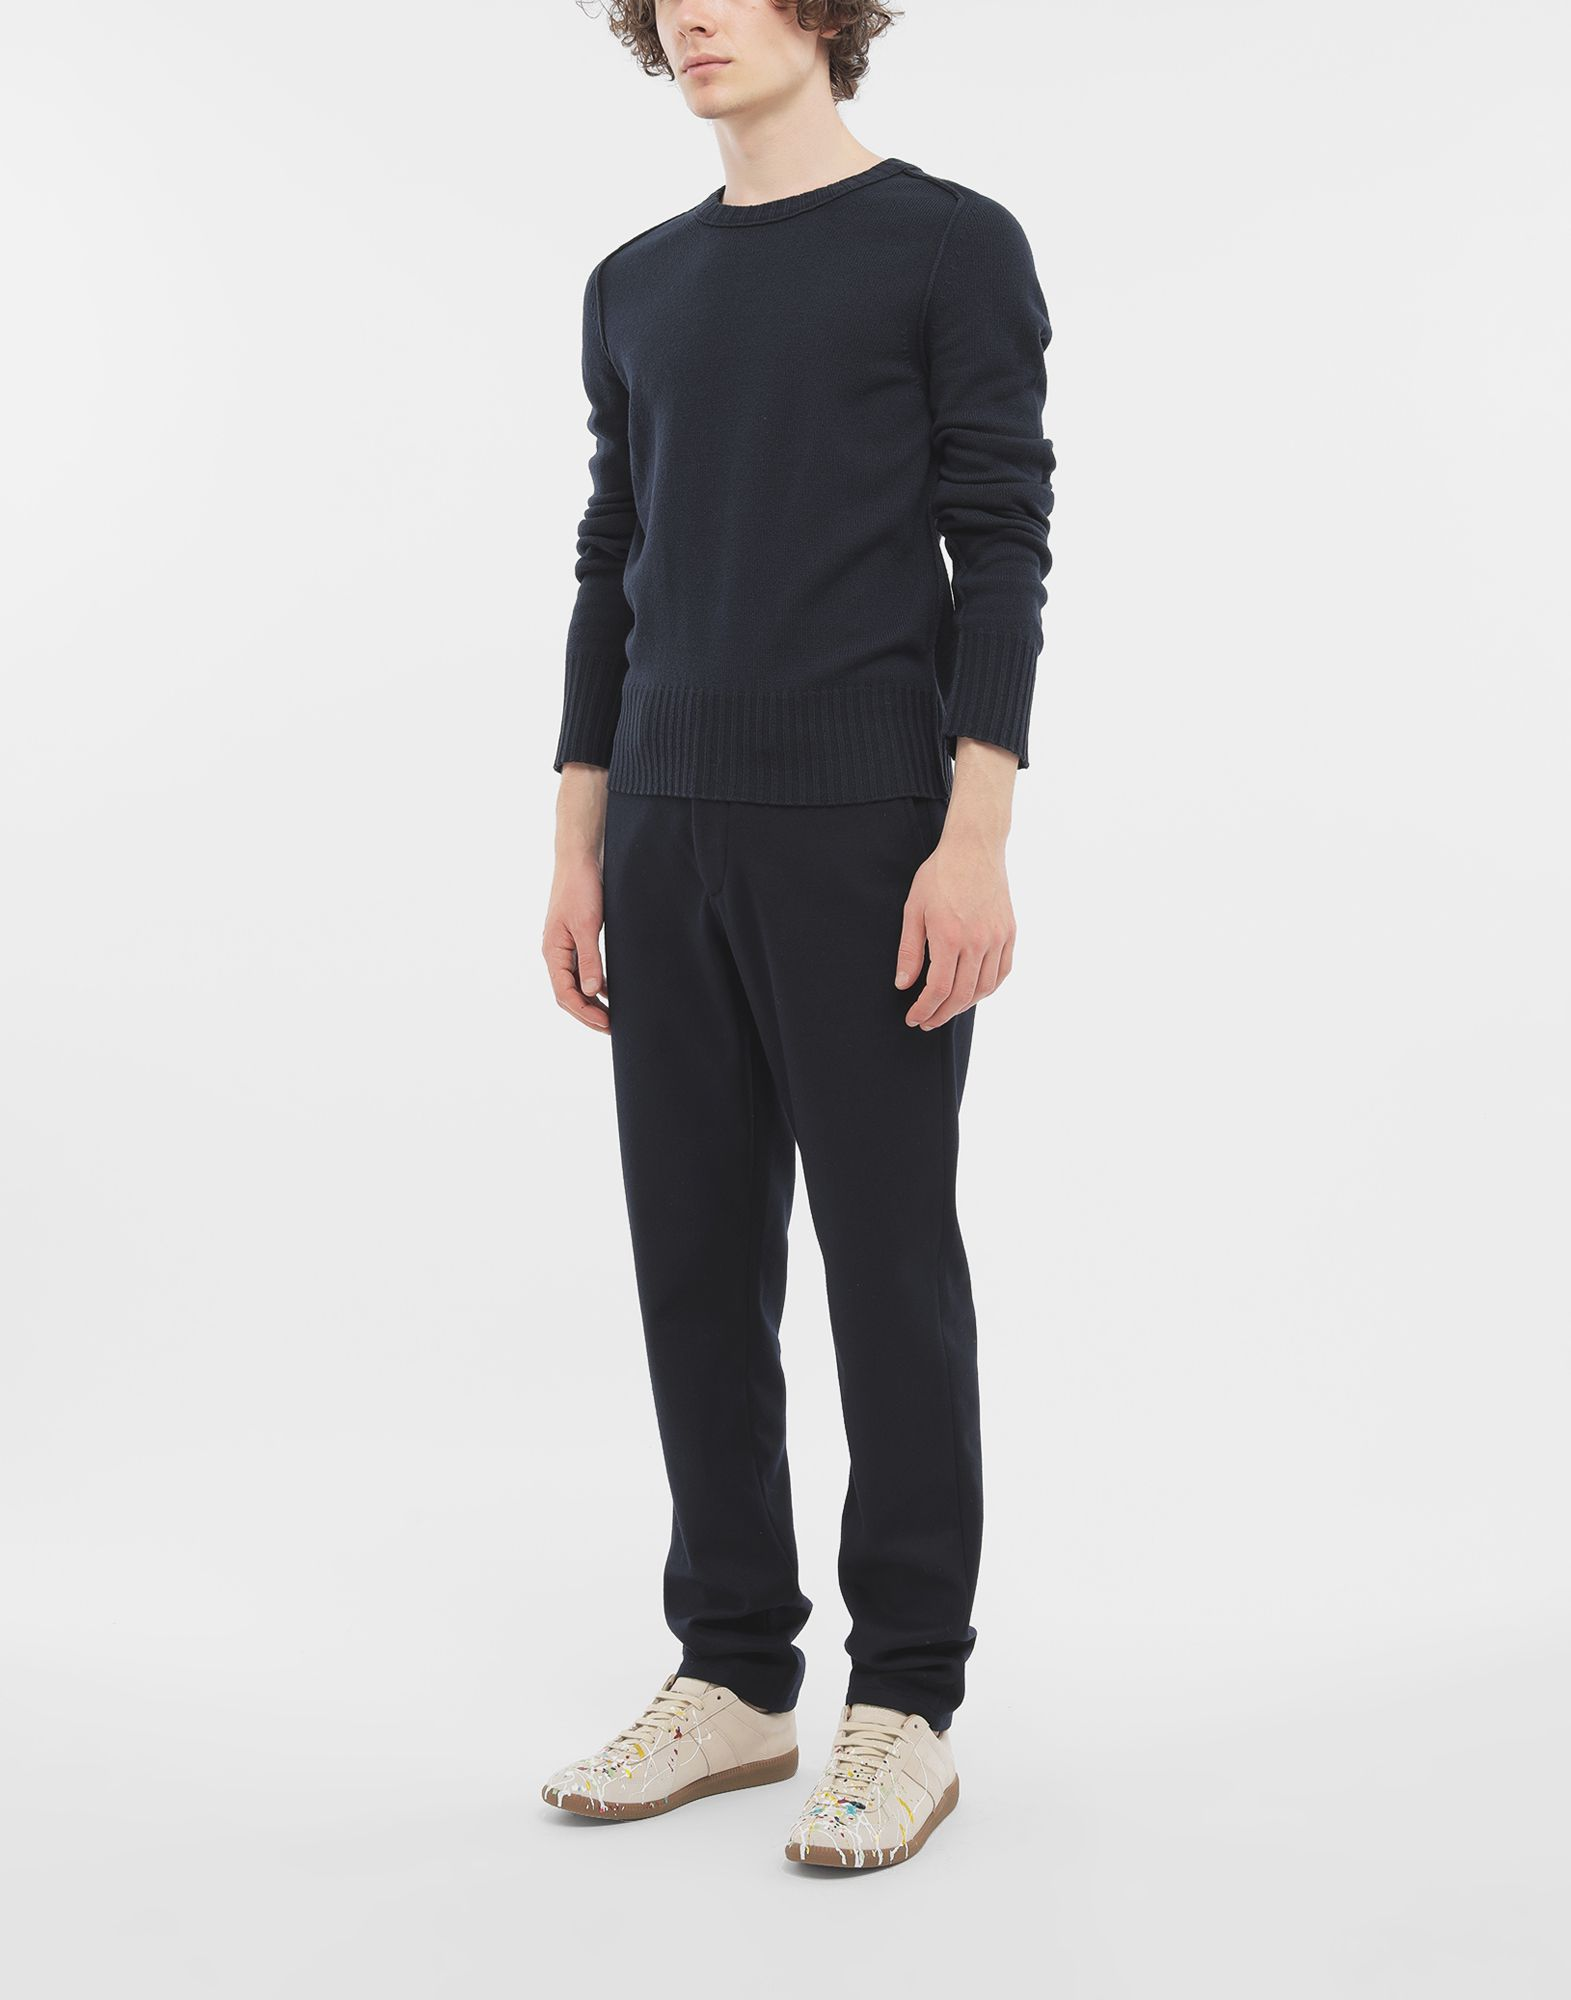 MAISON MARGIELA Elbow patch wool sweater Crewneck sweater Man d